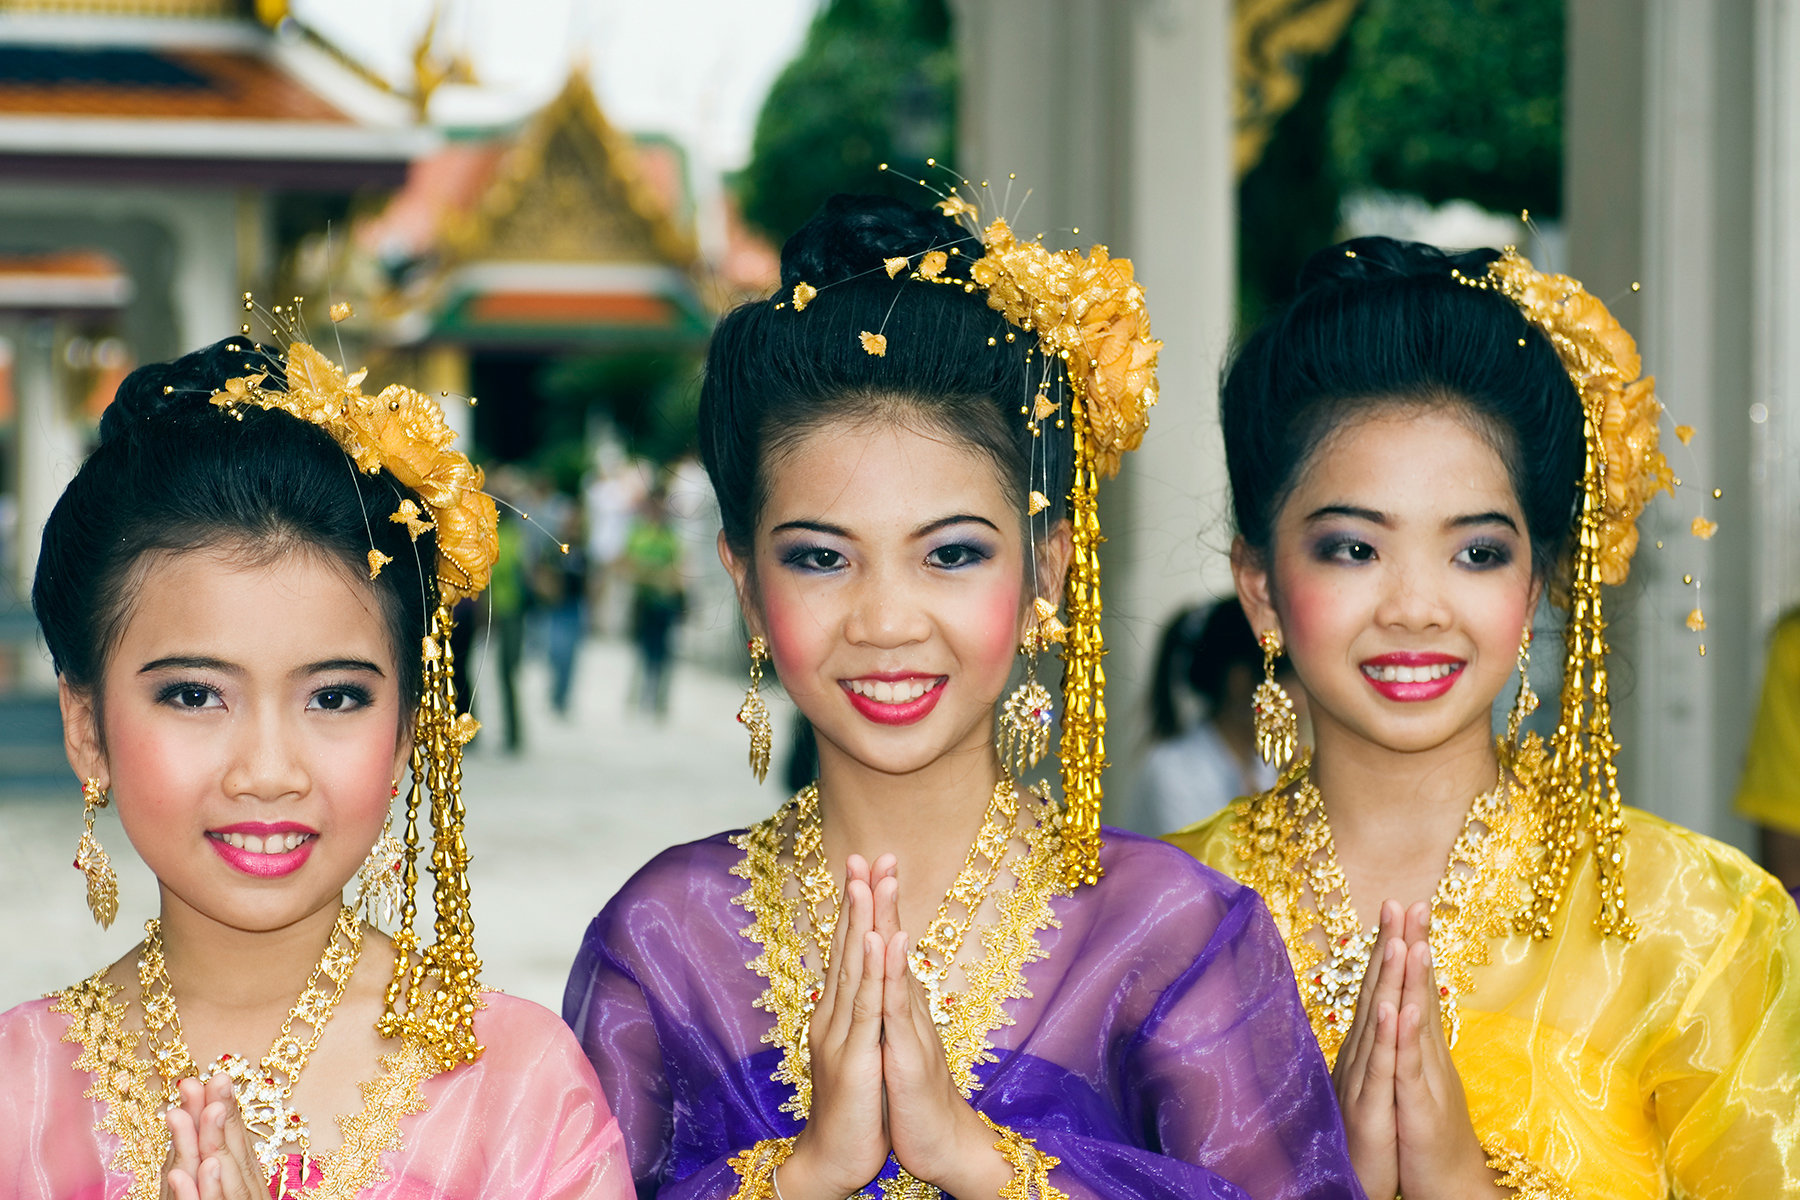 Thailand, Bangkok, Royal Palace, Girls dressed In traditional Thai clothing greeting visitors and tourists